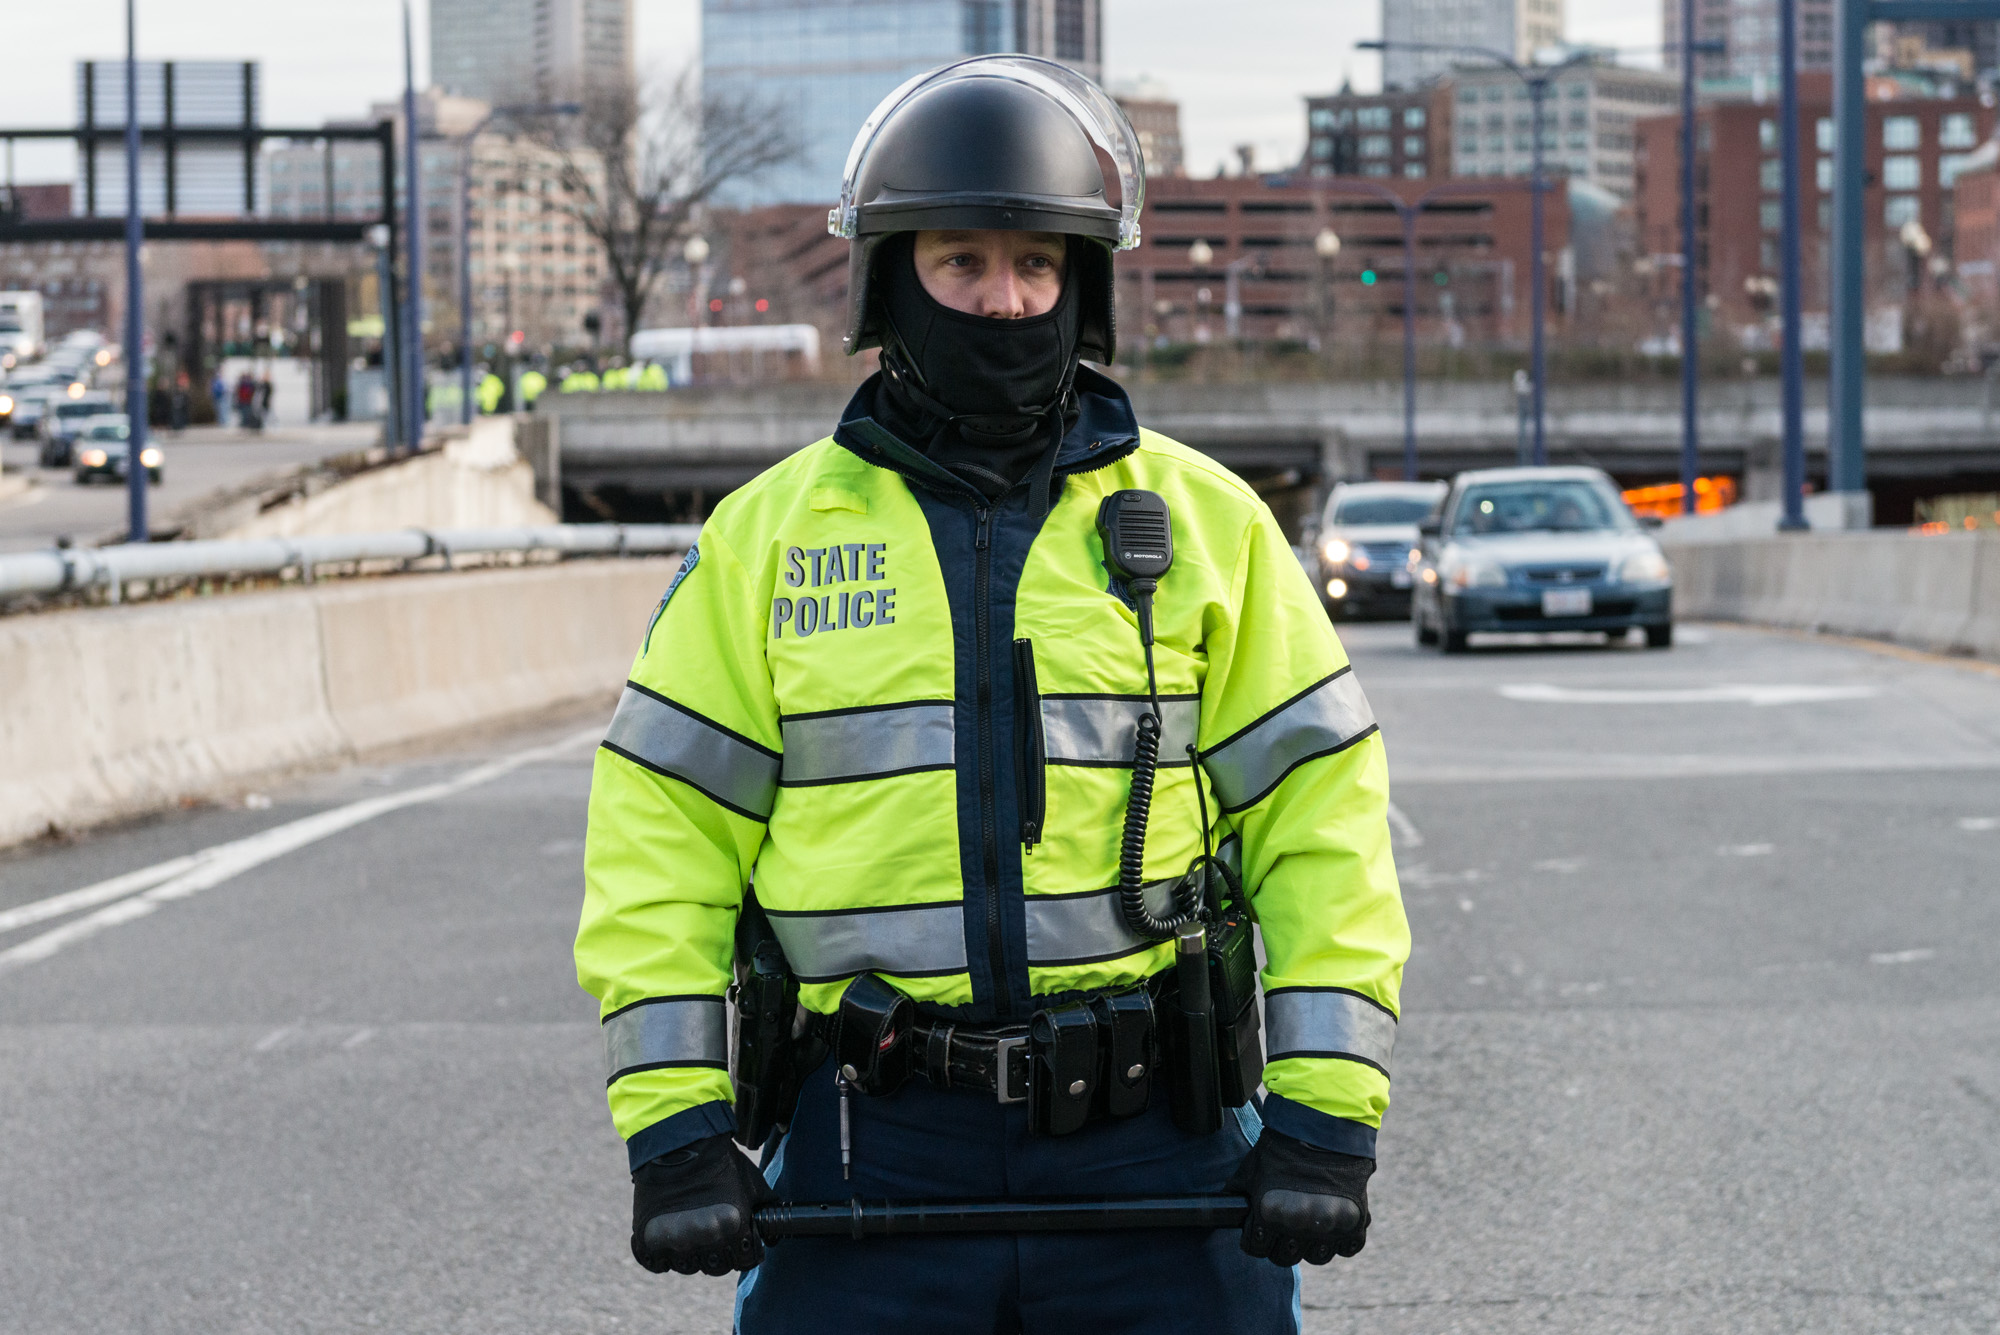 State Trooper with baton in hand blocking the roadway